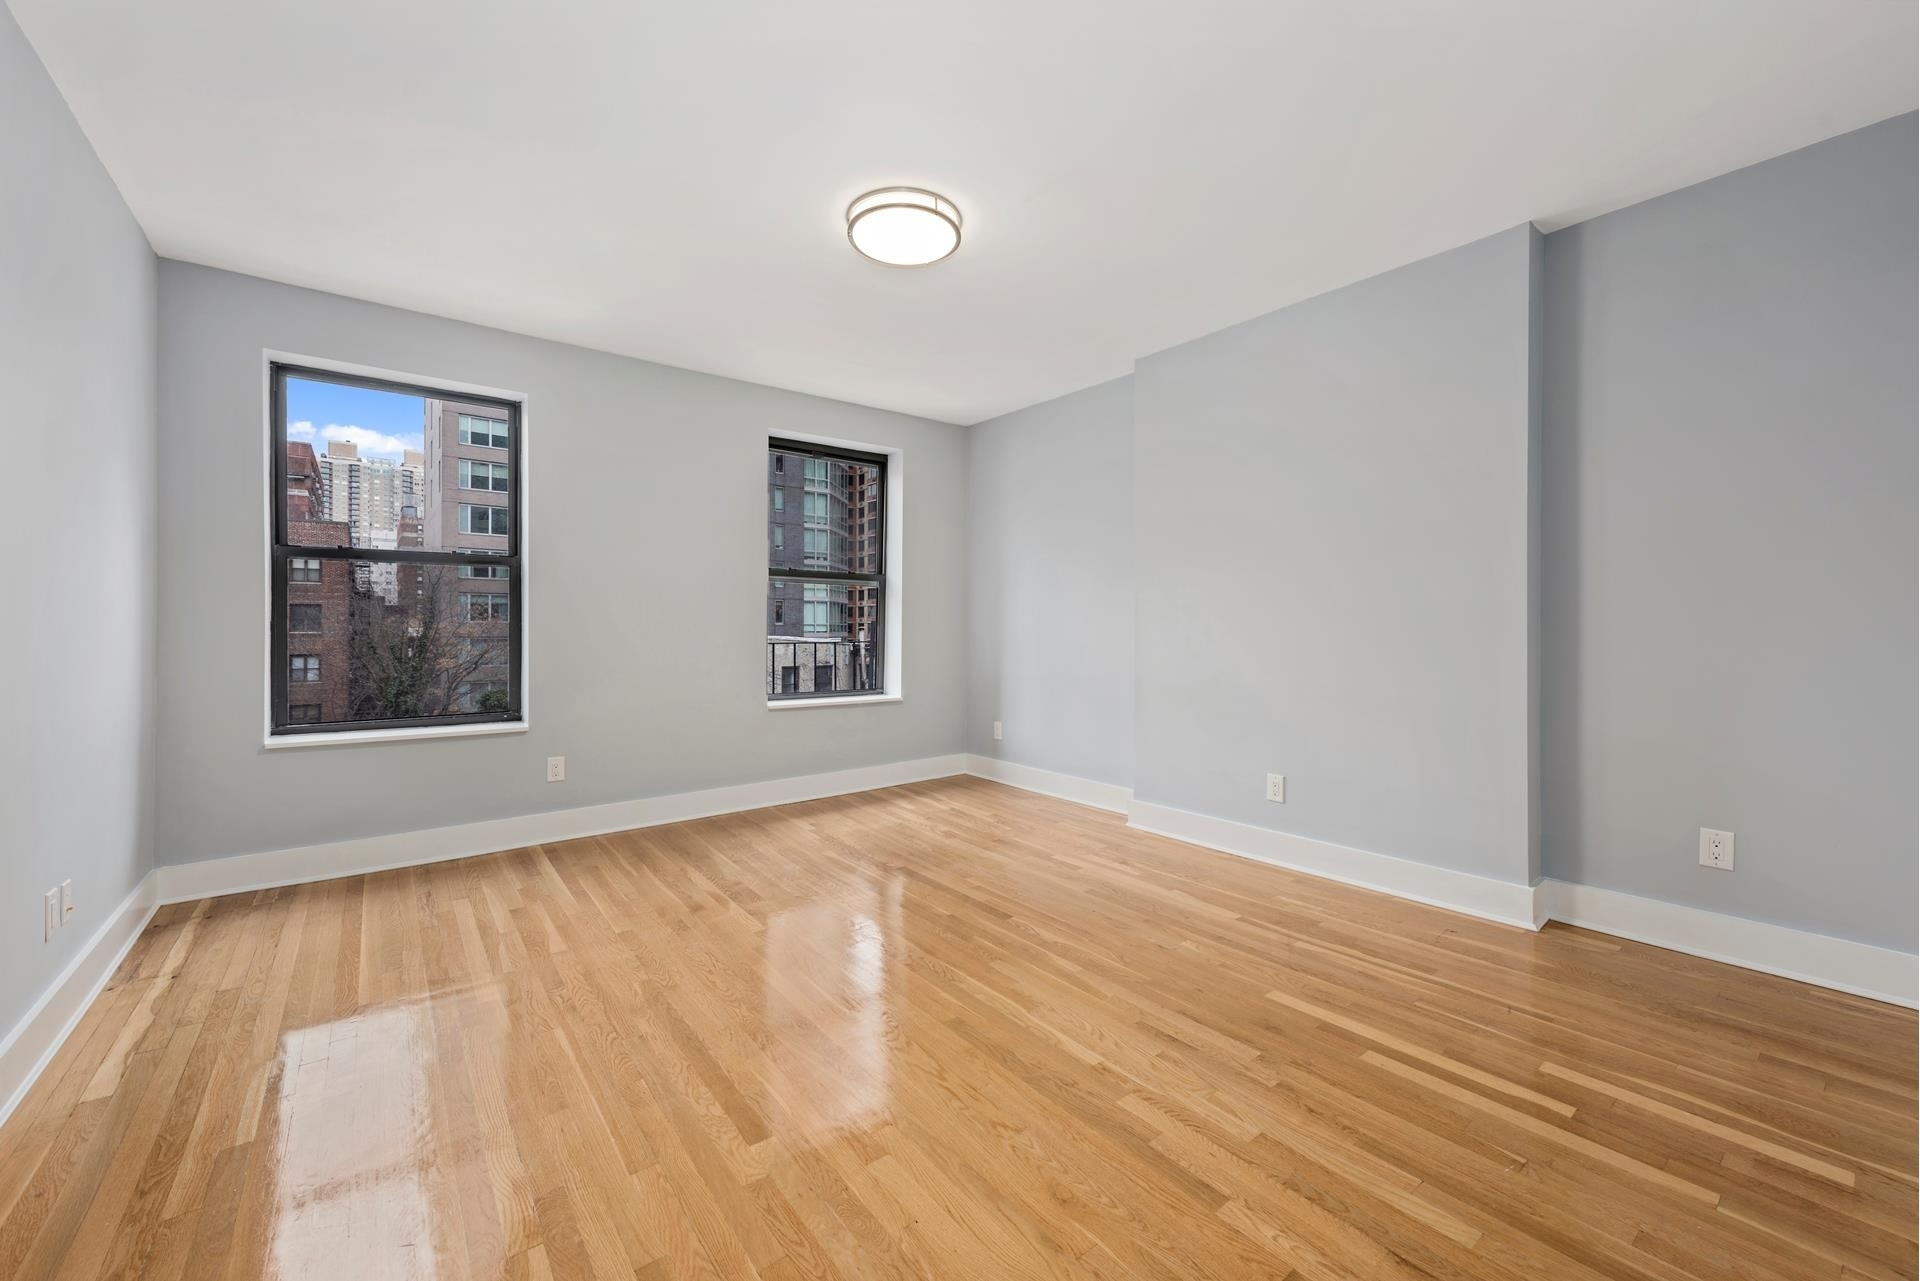 Property at 515 THIRD AVE , 3 New York